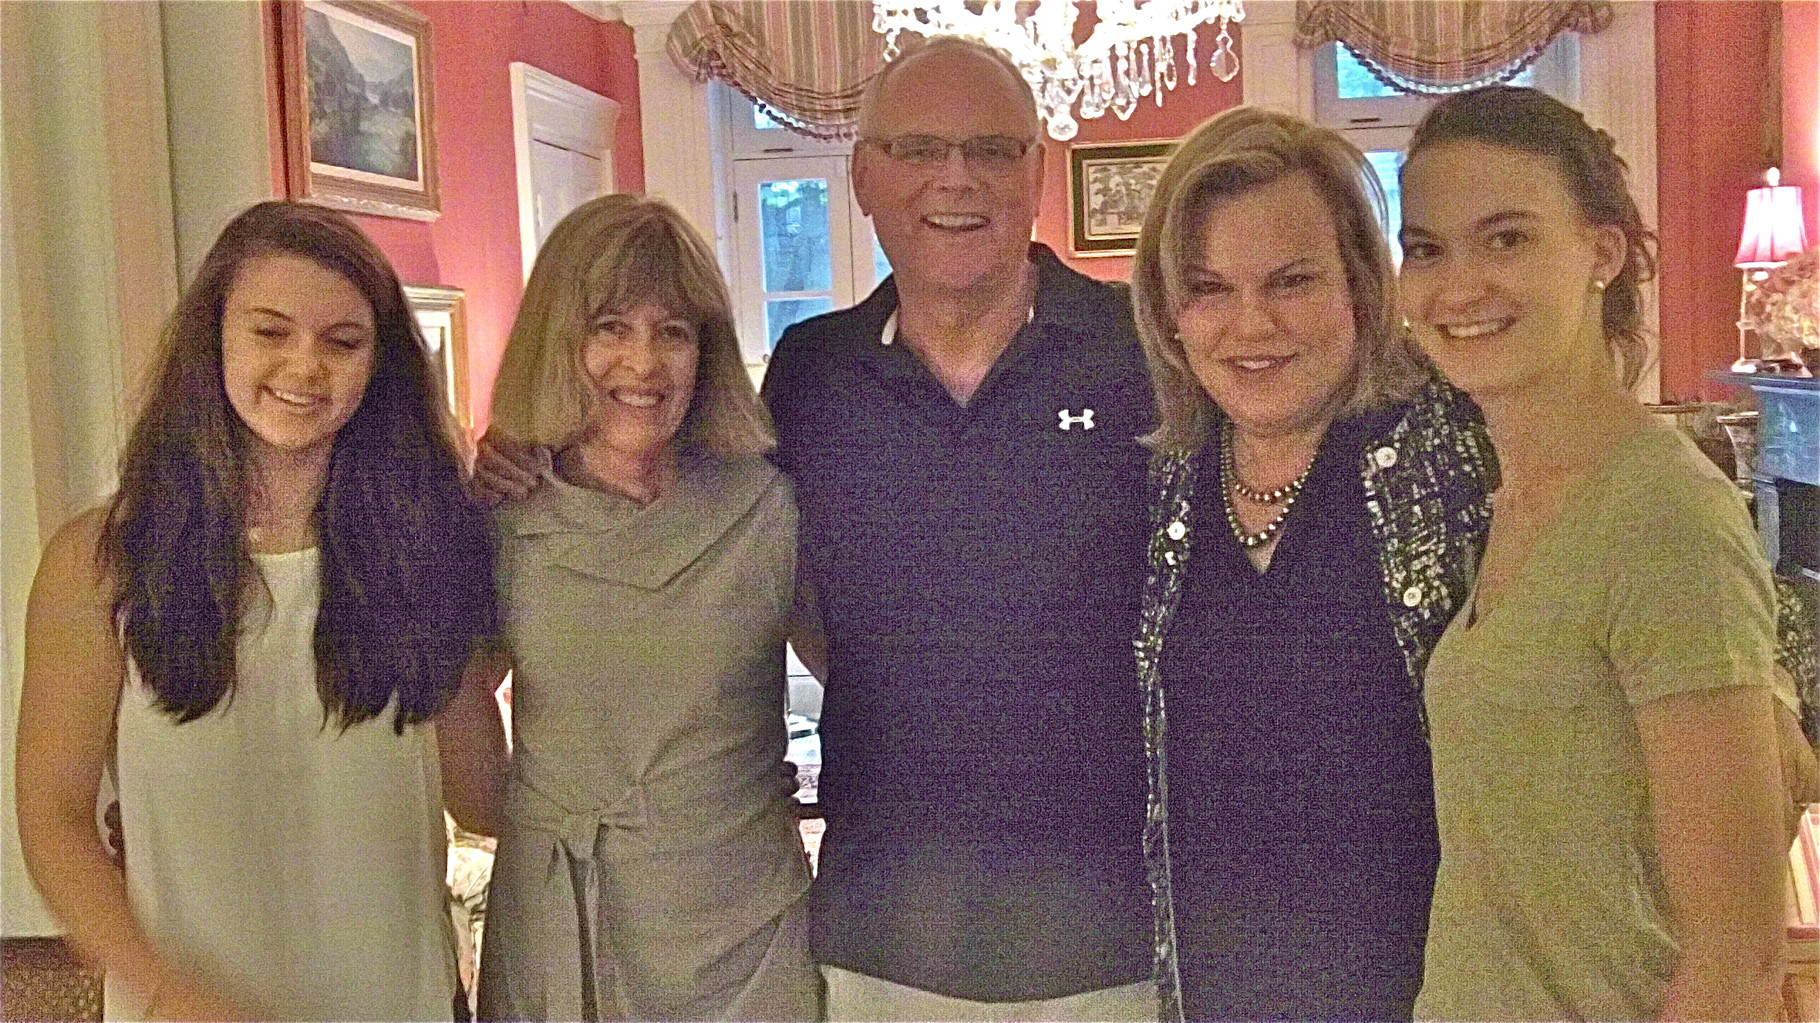 Nancy Hynes & Bernd Groner's visit to NYC, Jones Beach, Freeport, LI & more!   July, 2015  Kate, Nancy, Bernd, Celeste, Ellie